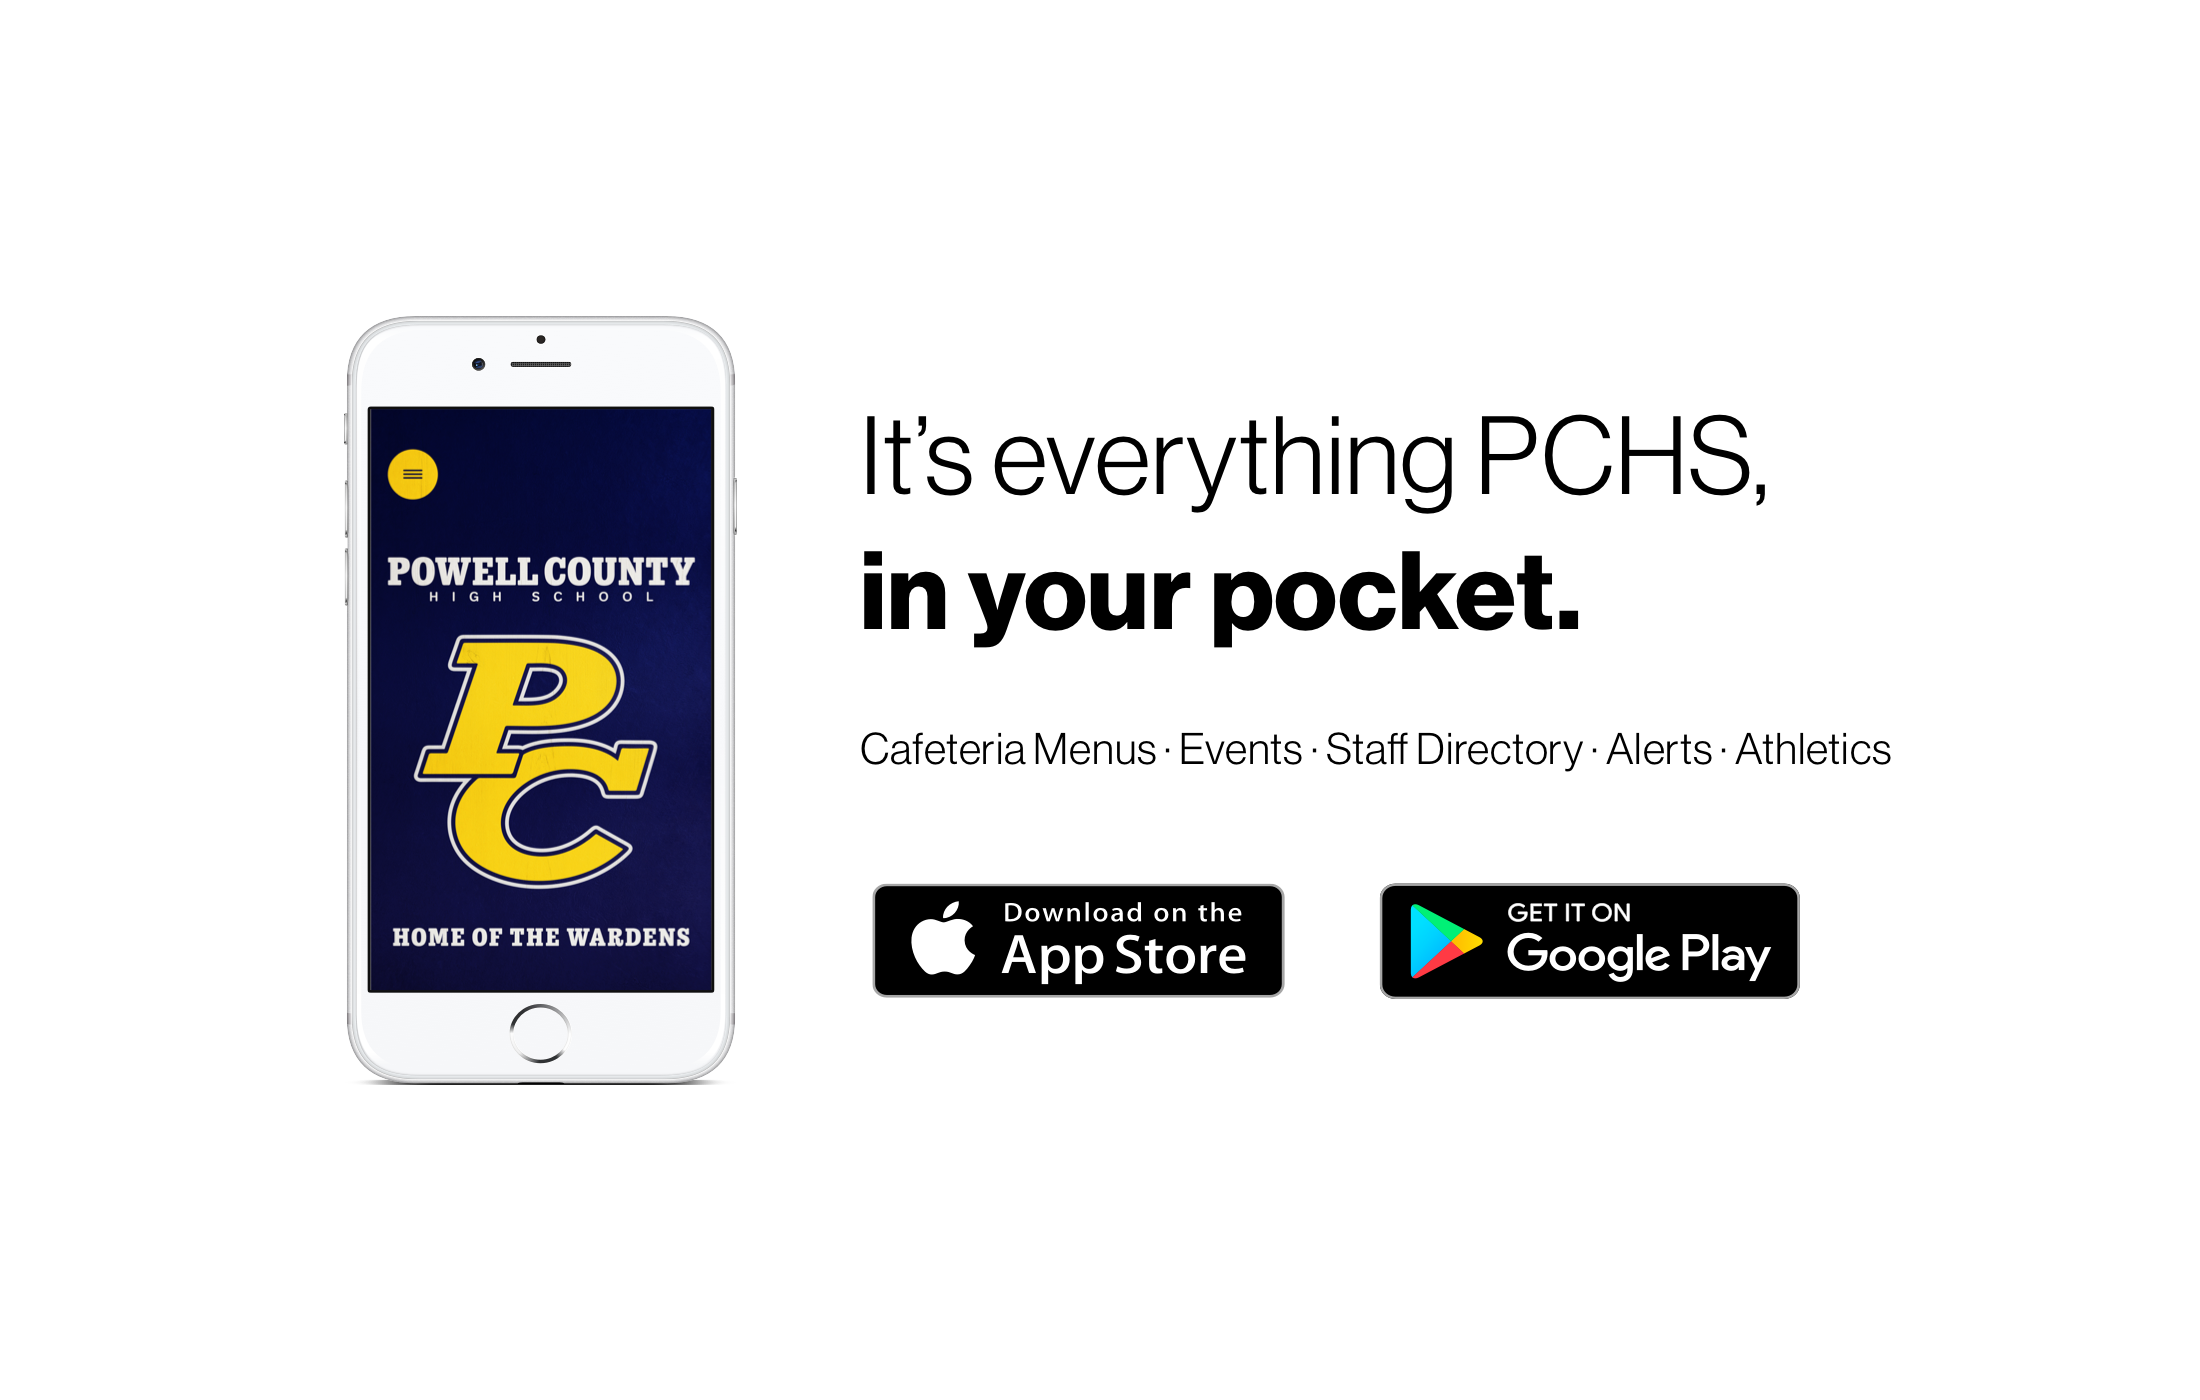 Picture of a phone showing our PCHS APP with buttons showing you can download it